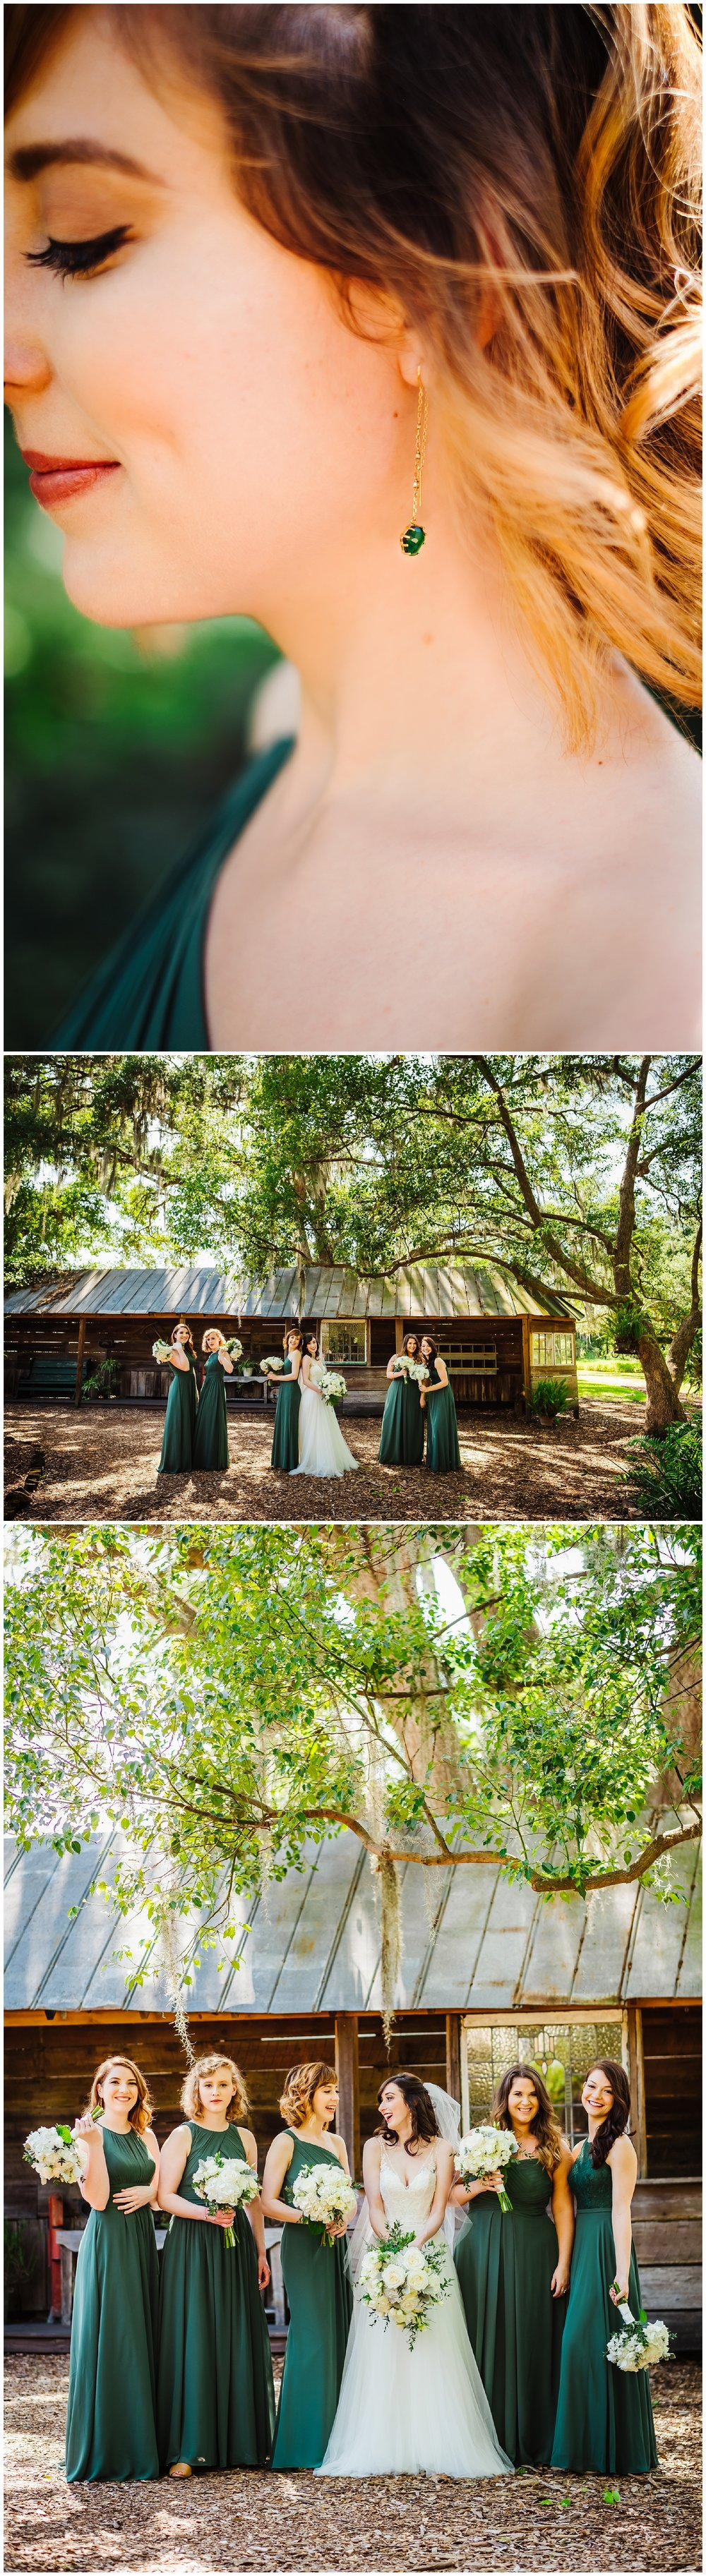 cross-creek-ranch-tampa-wedding-photographer-lush-green-white-florals_0017.jpg